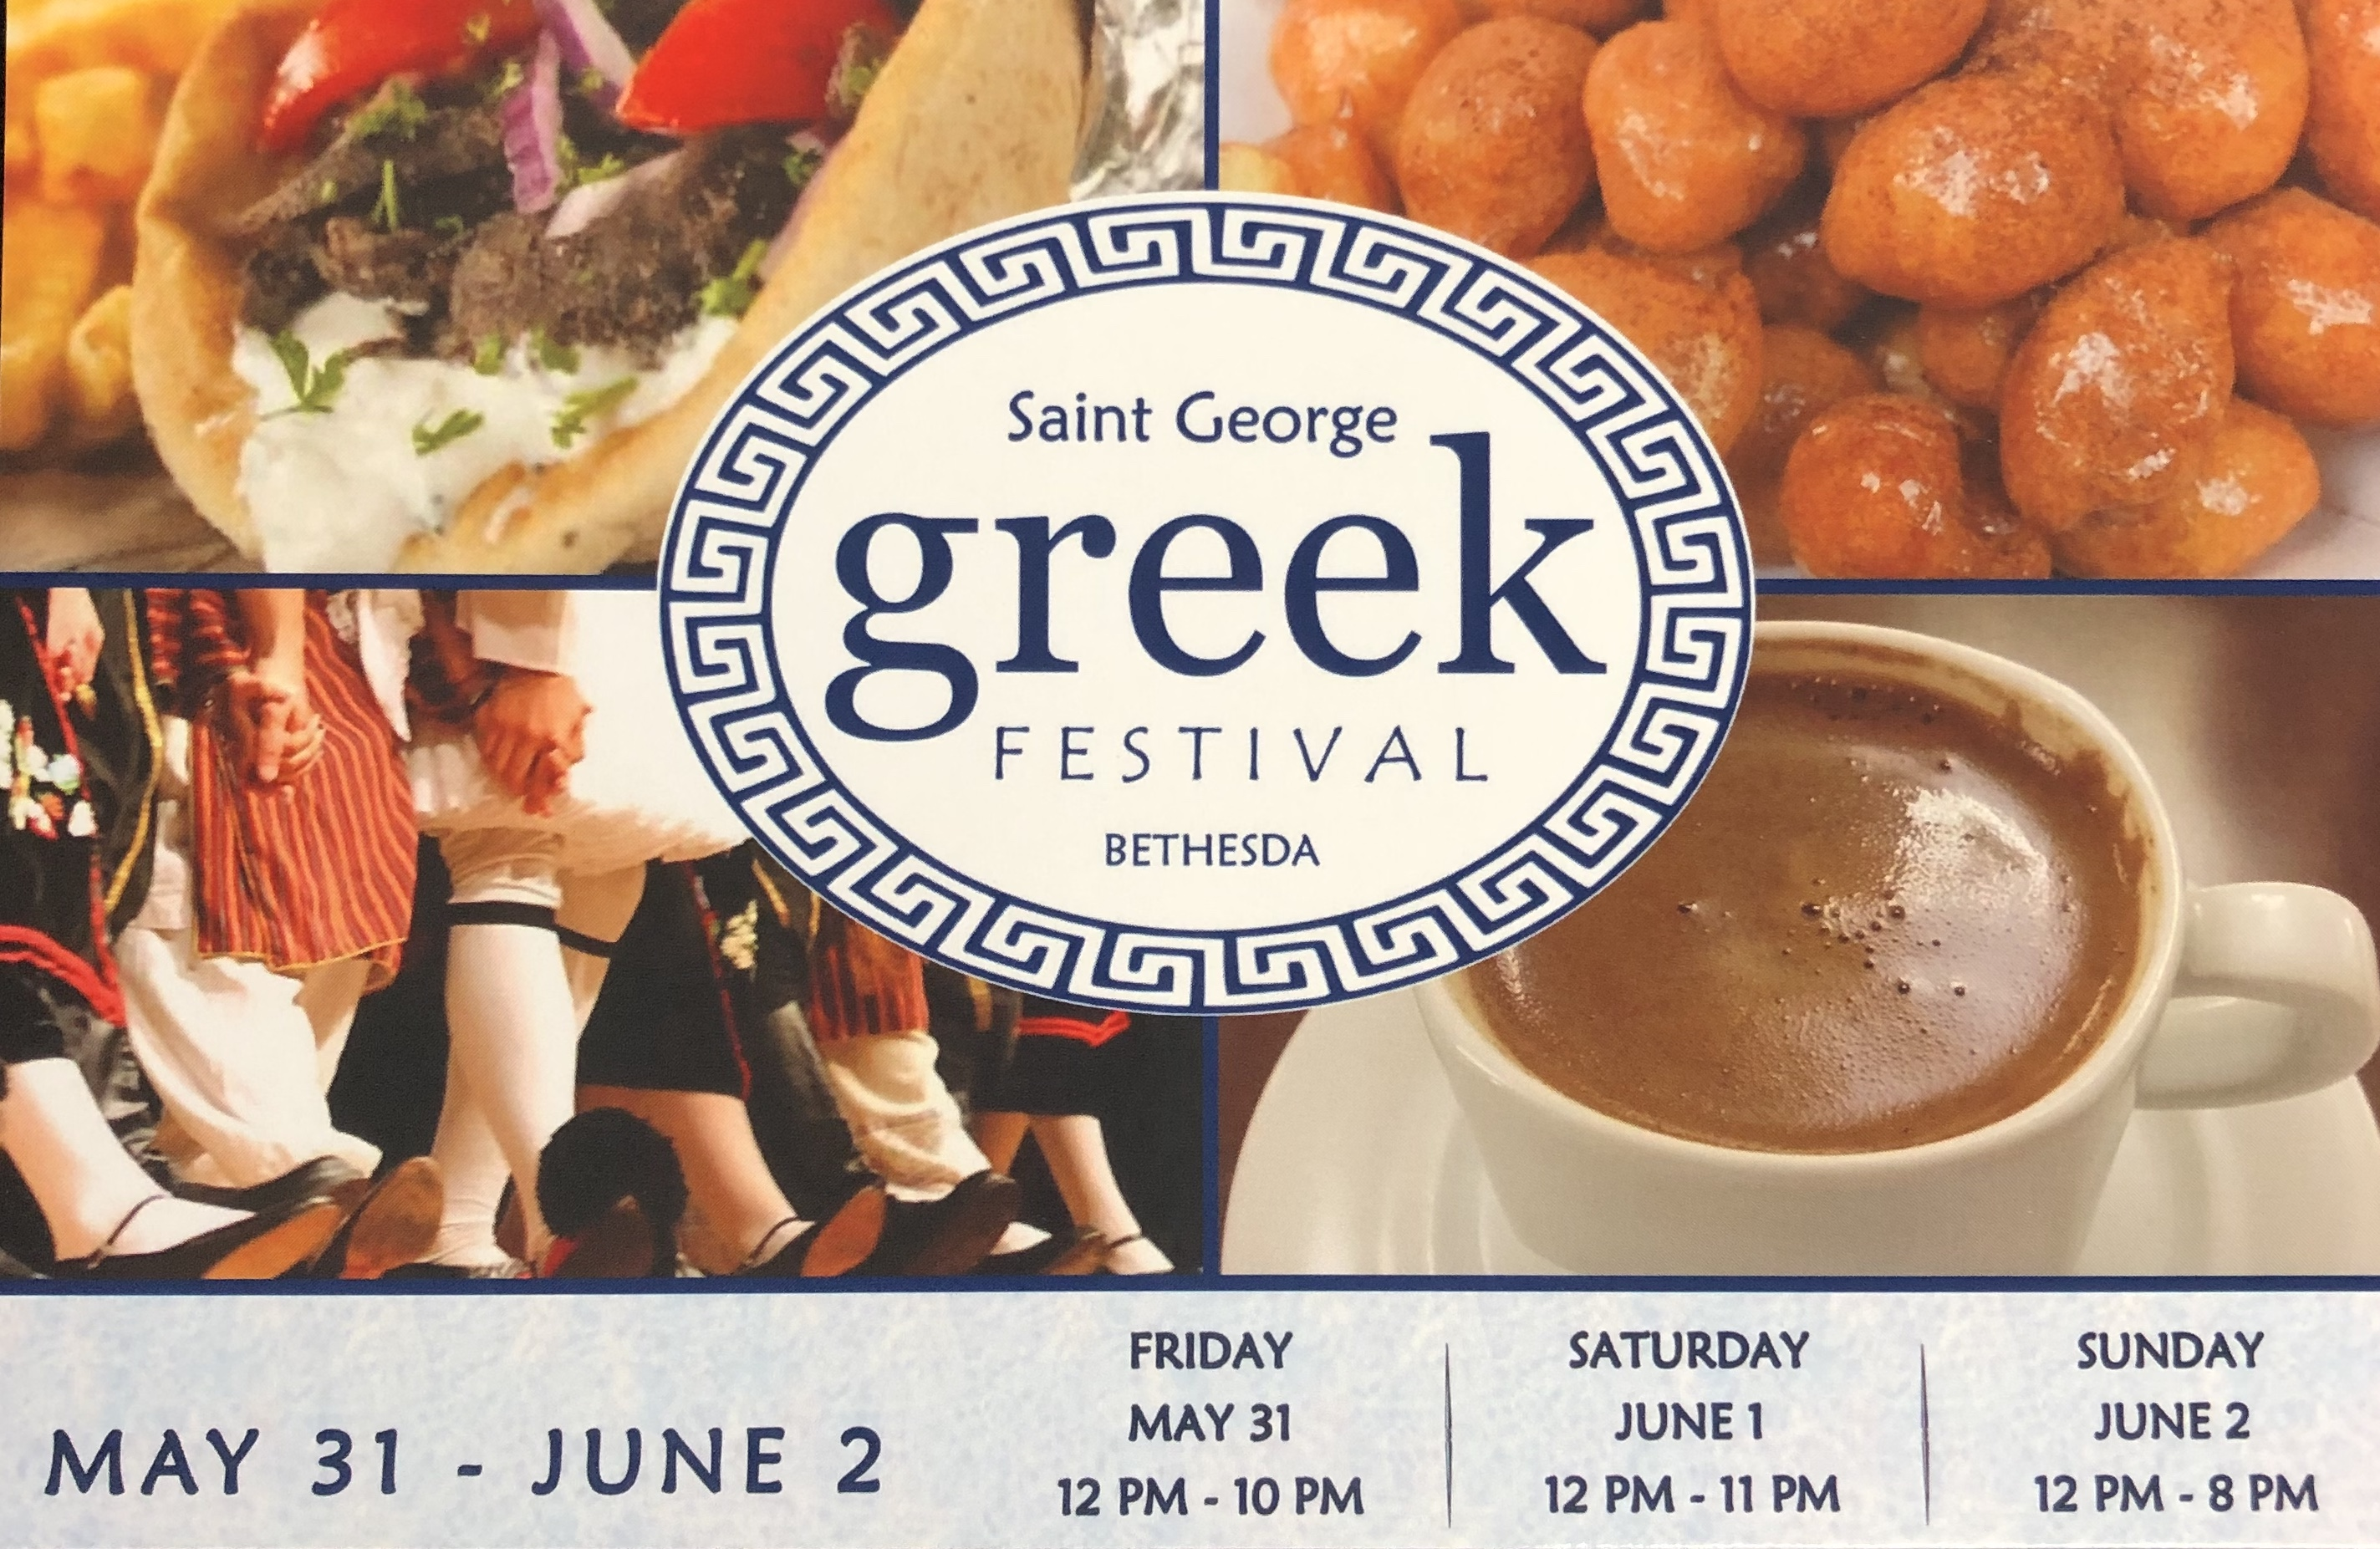 St  George Greek Festival - The Greek Orthodox Church Of Saint George